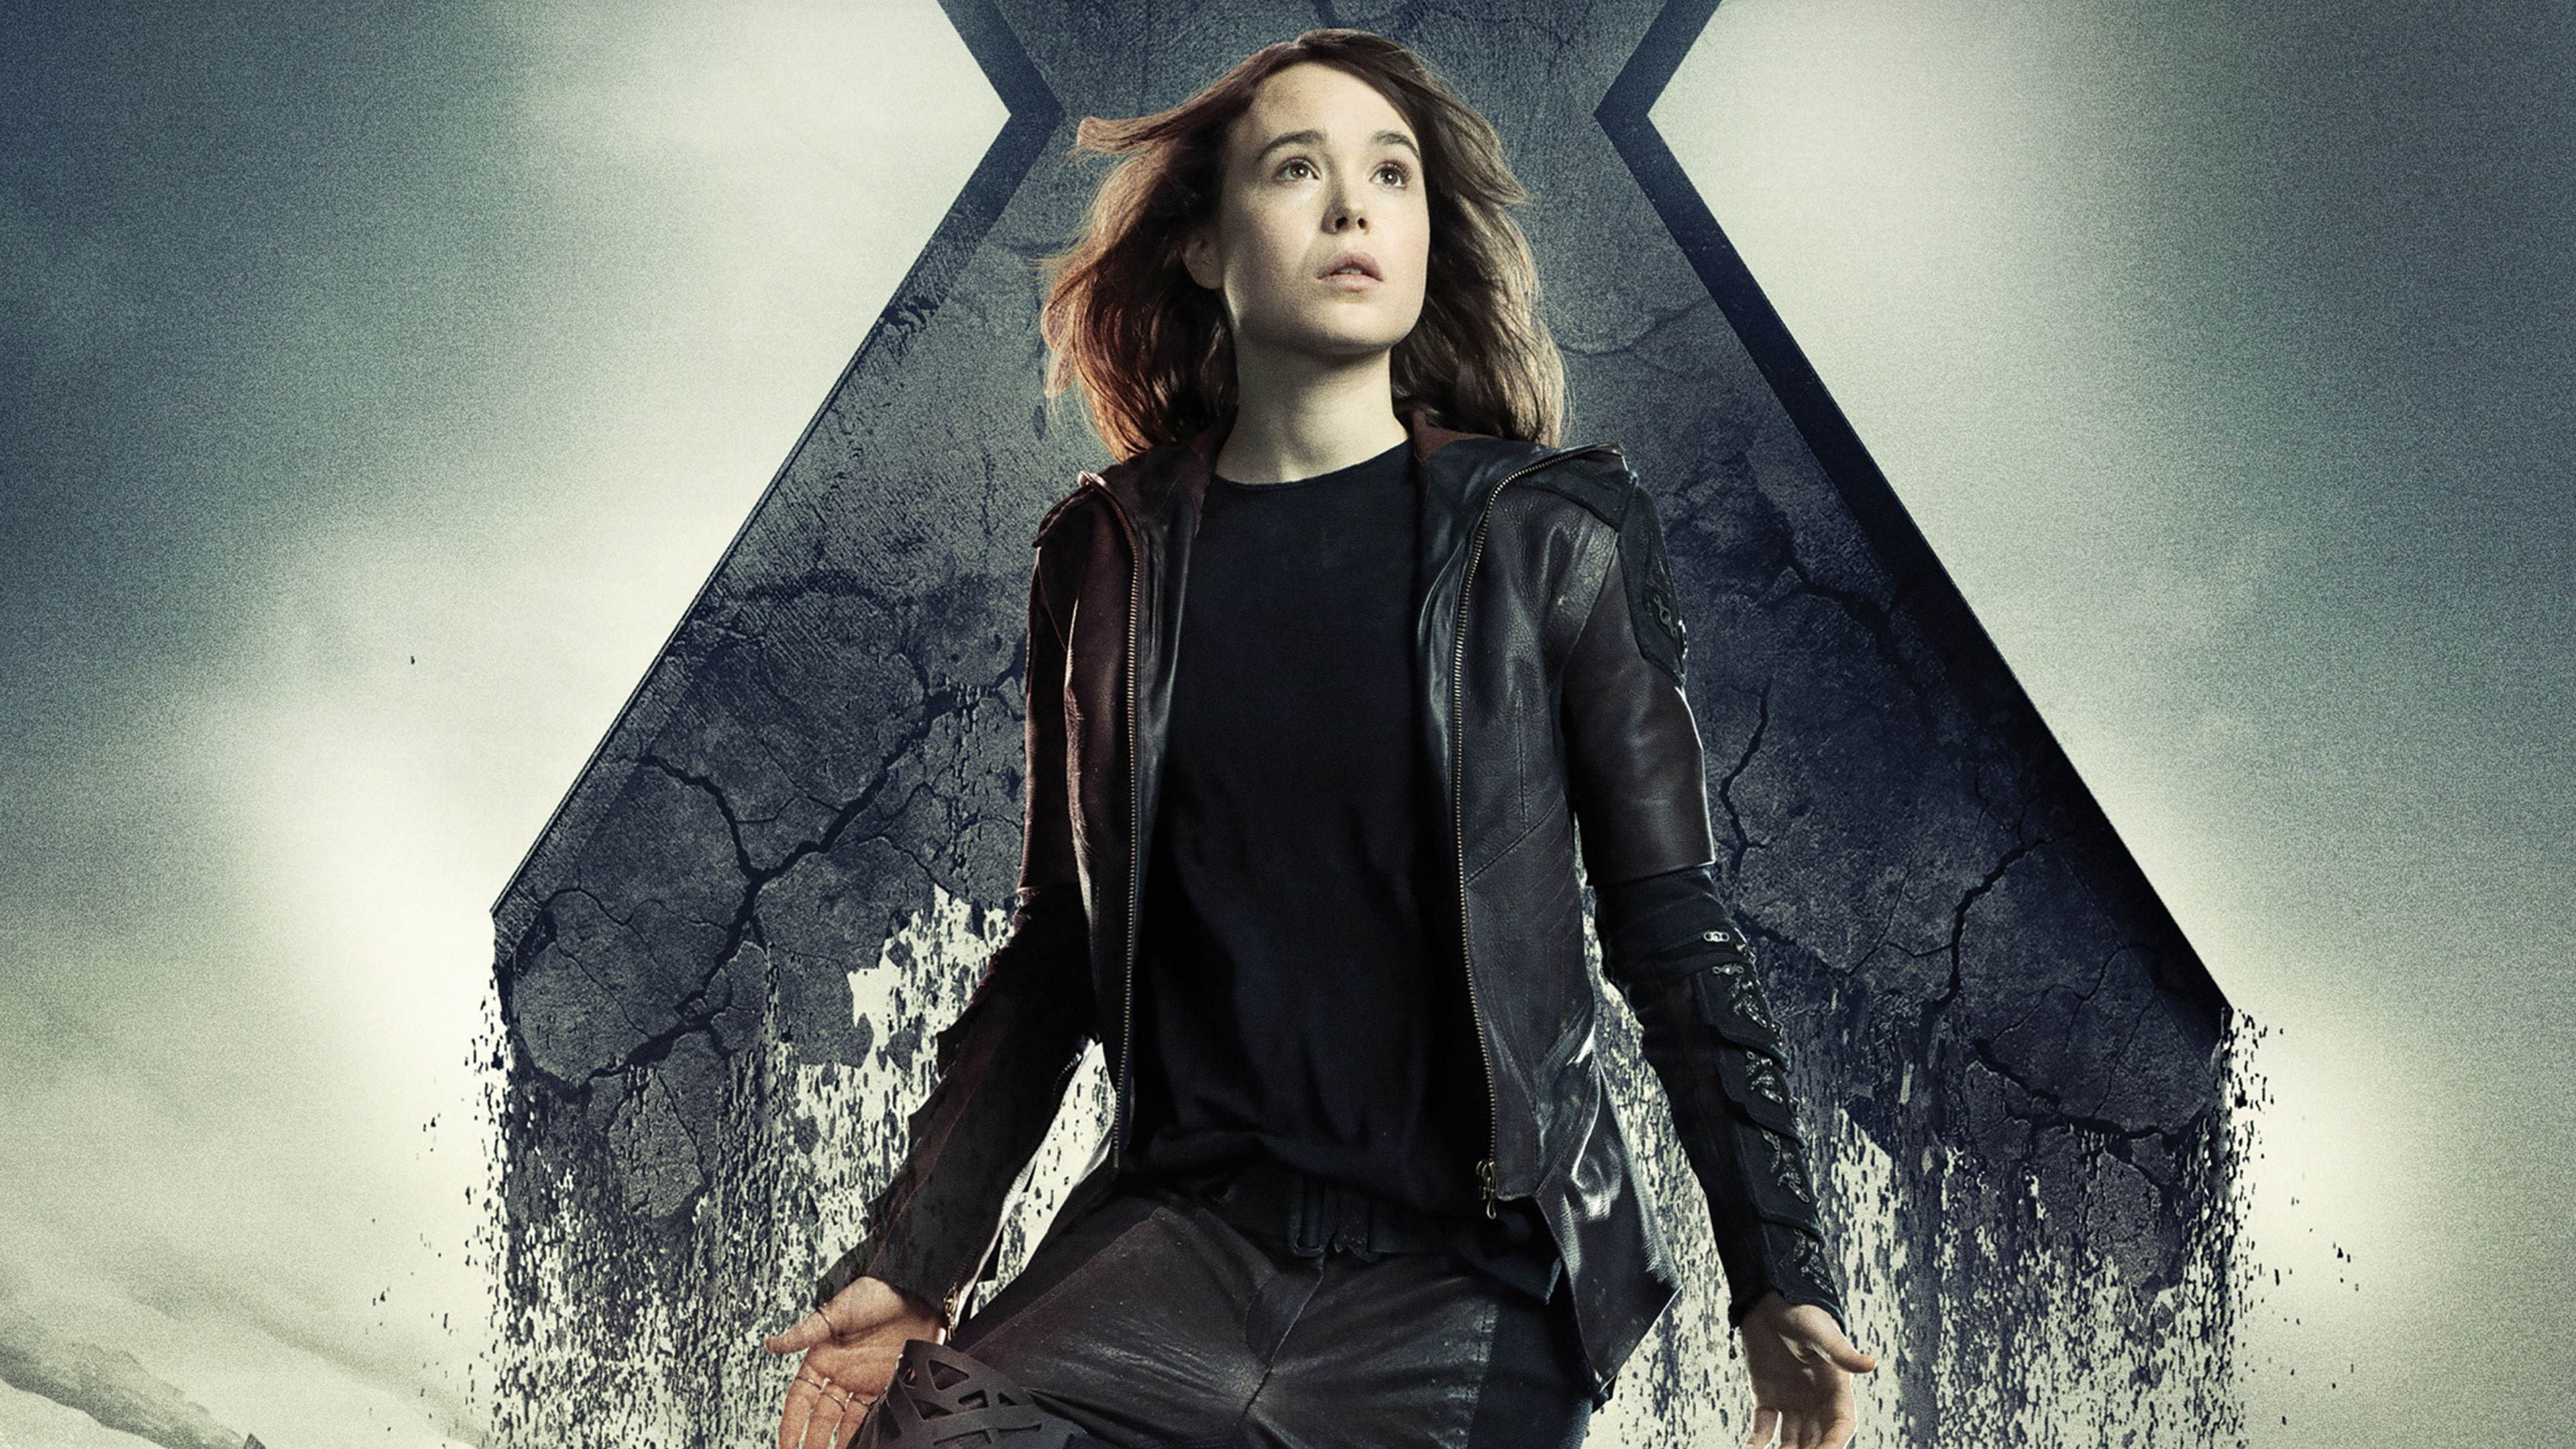 Ellen Page X Men Days Of Future Past Hd Movies 4k Wallpapers